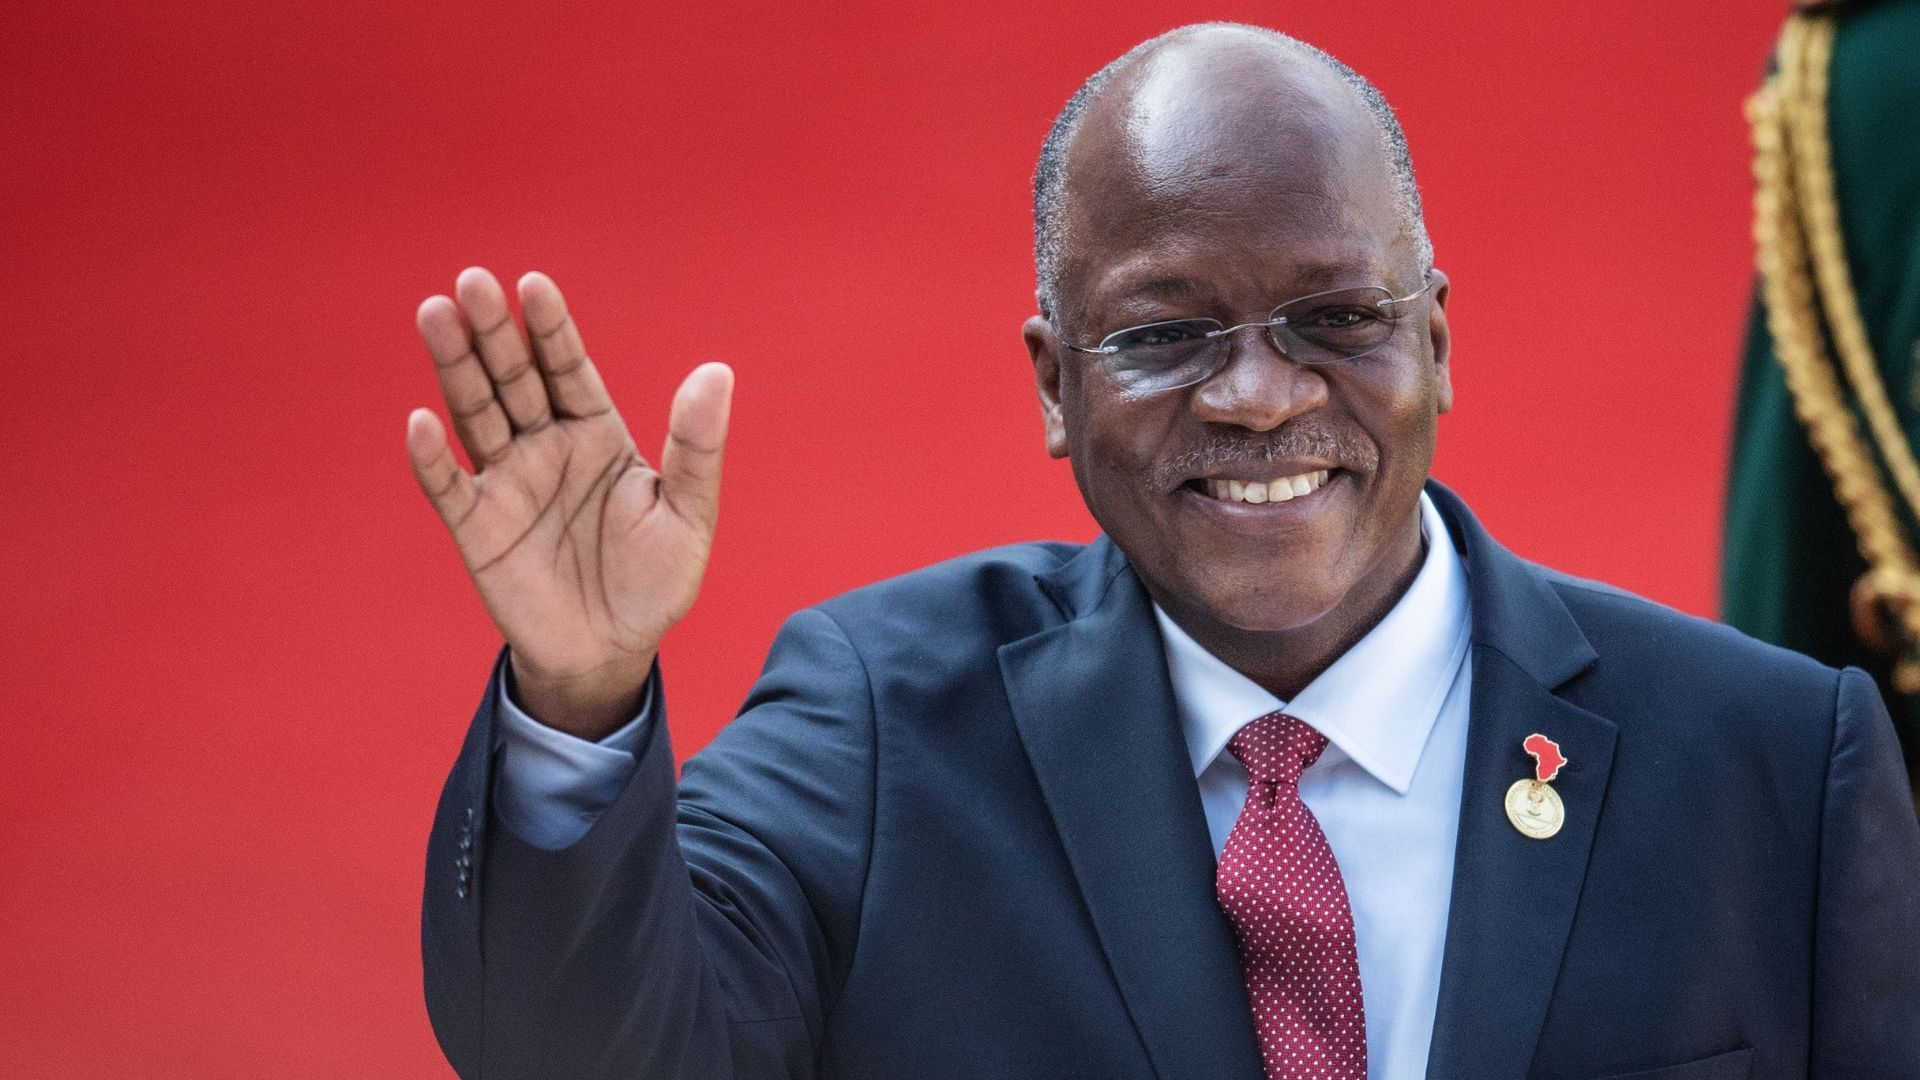 President John Magufuli: A Model Leader in Africa for Employing Science in Politics